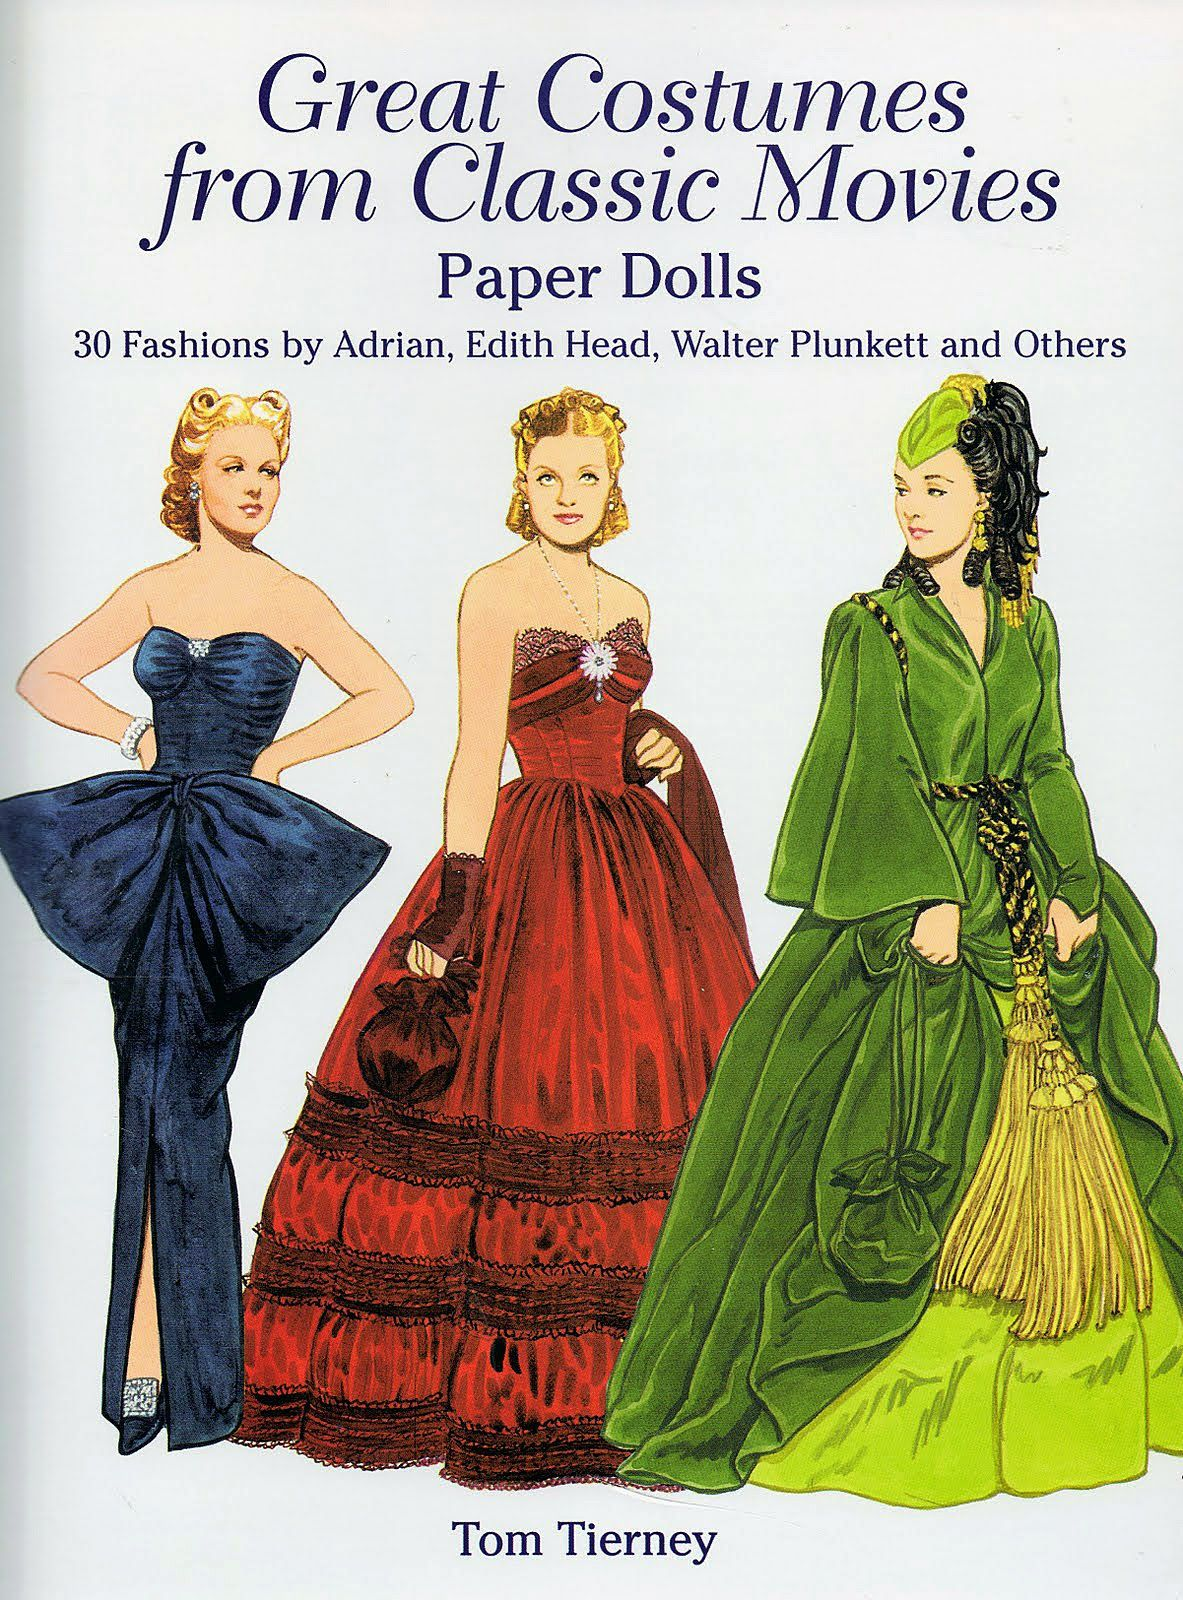 Tom tierney colonial fashions paper dolls - Fashion The Fashion Doll Chronicles Tom Tierney The Paper